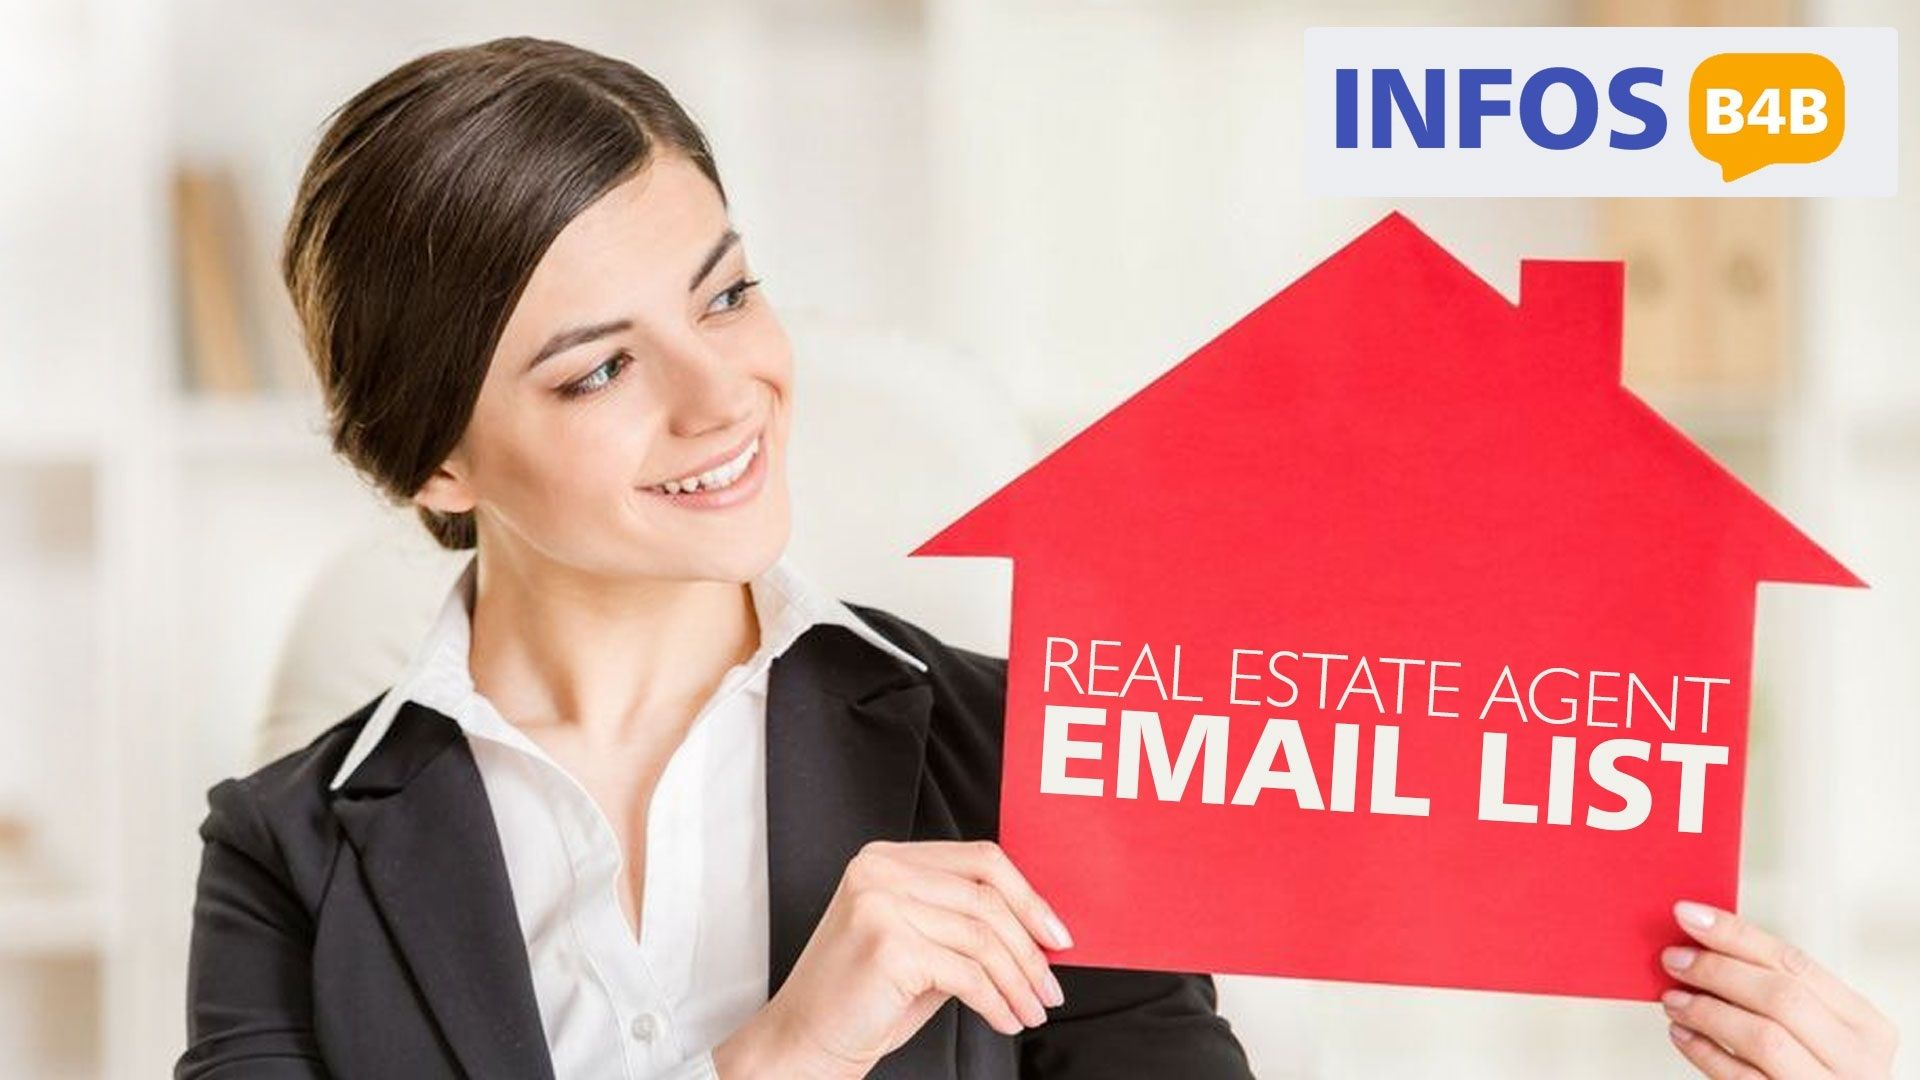 Real Estate Agent Email List Real Estate Agent Email List